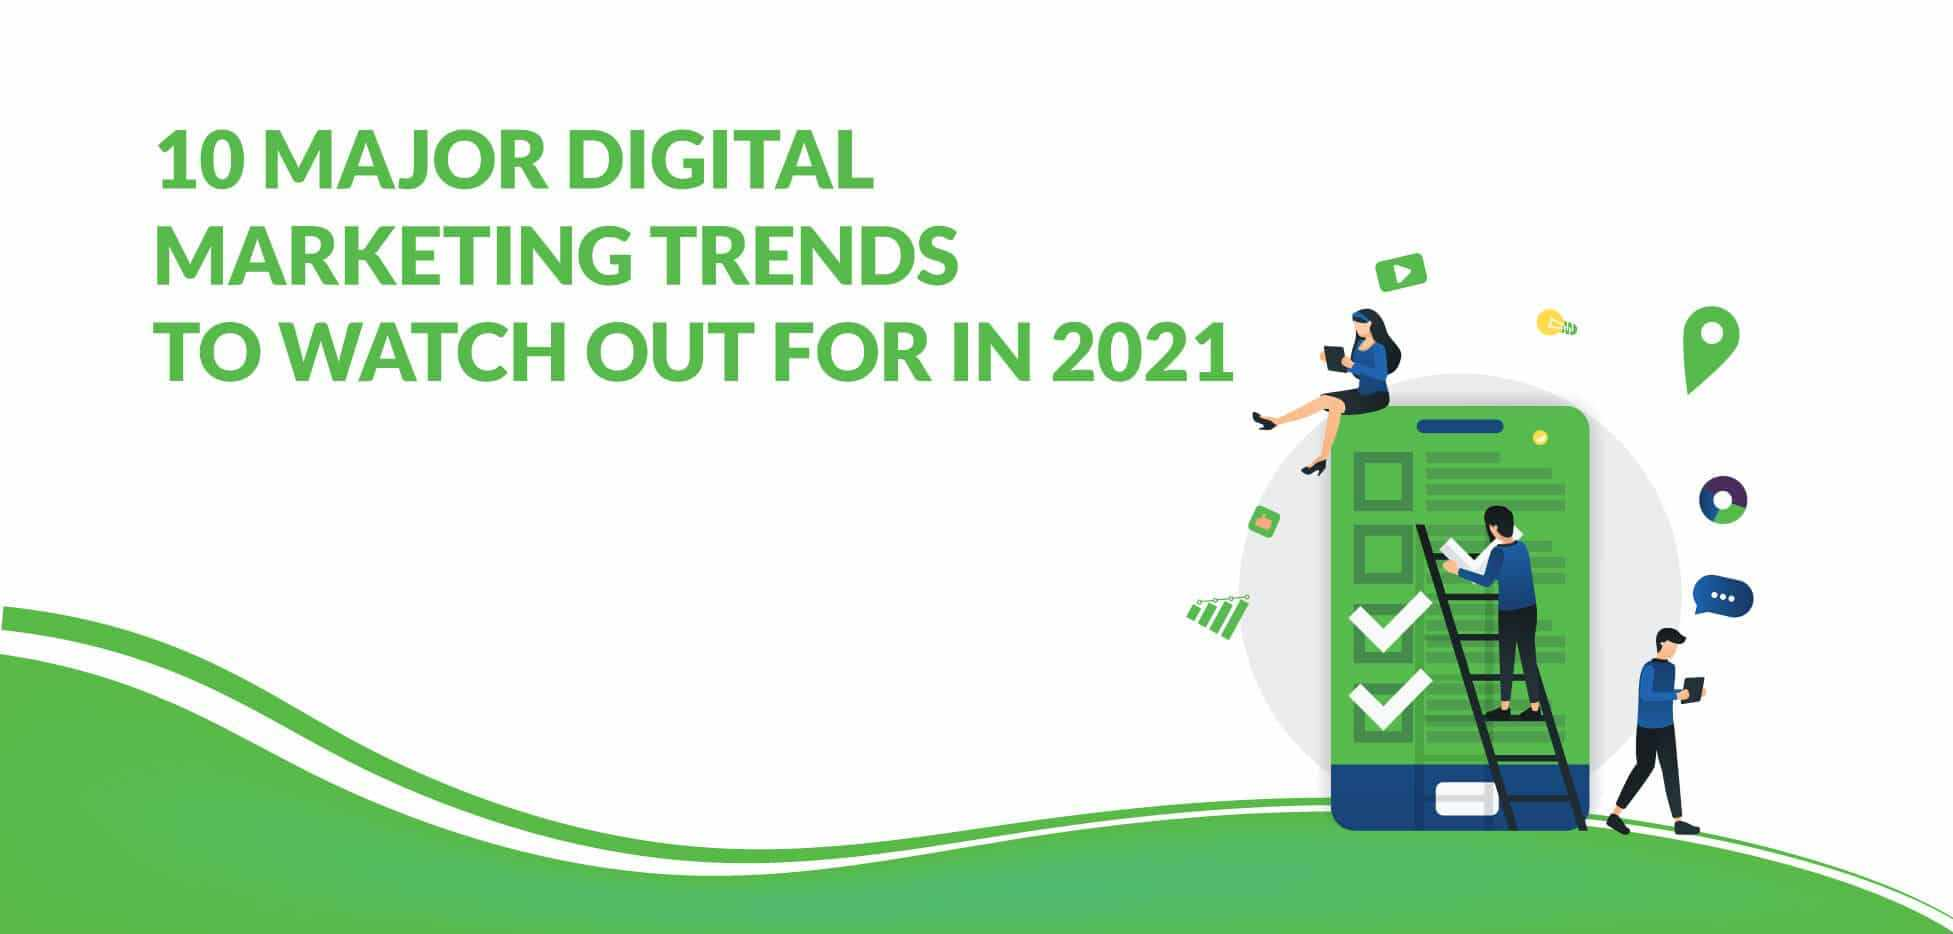 10 Major Digital Marketing Trends to Watch Out for in 2021_Vrootok